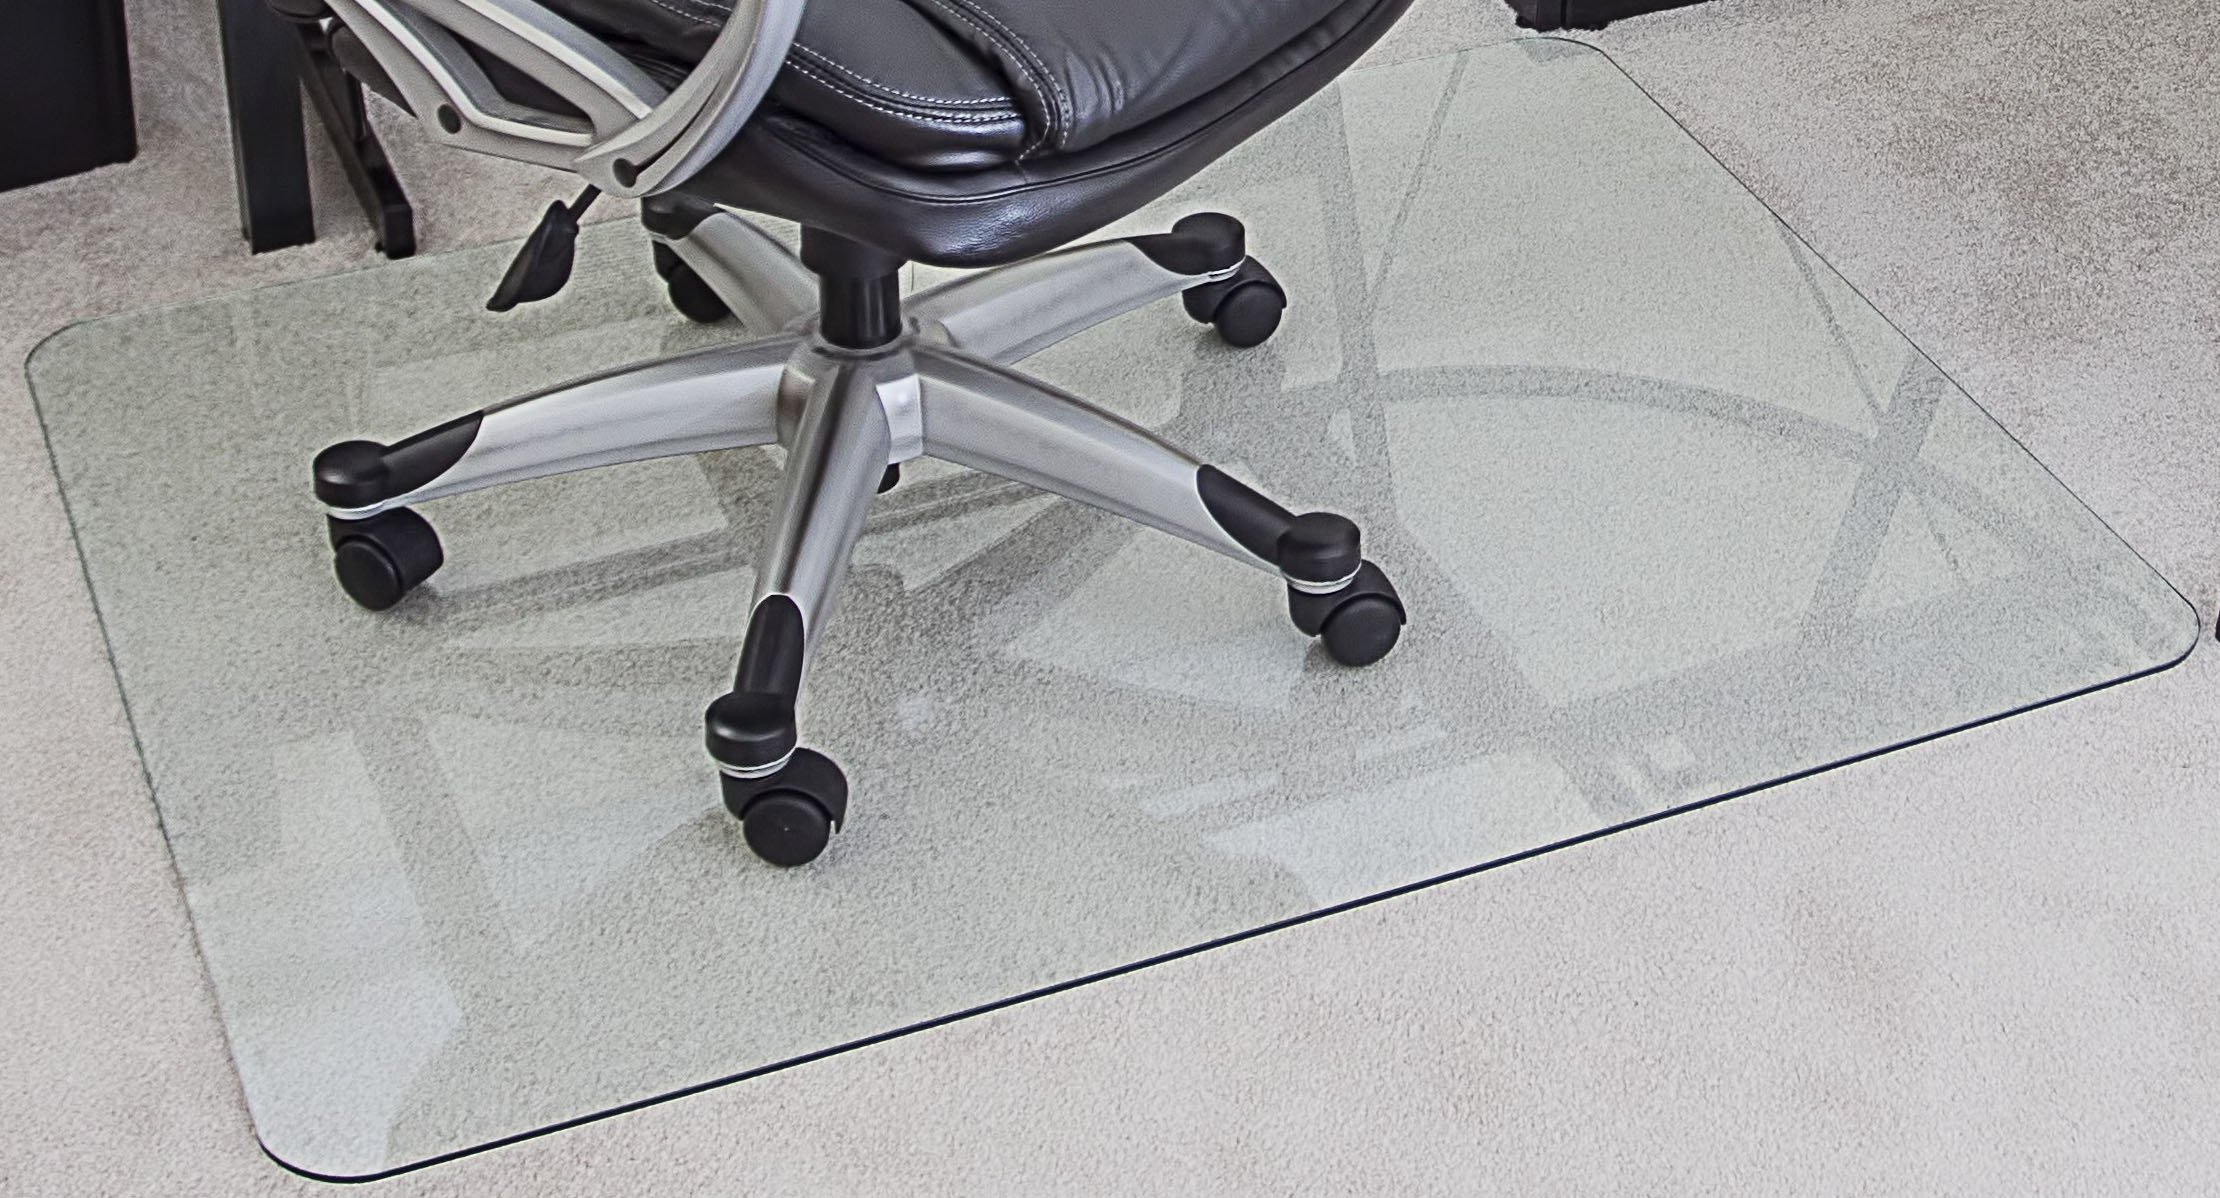 myGlassMat 36 X 48-Inch Tempered Glass Chair Mat for Carpet and Hard Floors, Rounded Corners, Smooth Polished Edges, 1/4-Inch Thick, Clear Glass (gcm36x48) by myGlassMat